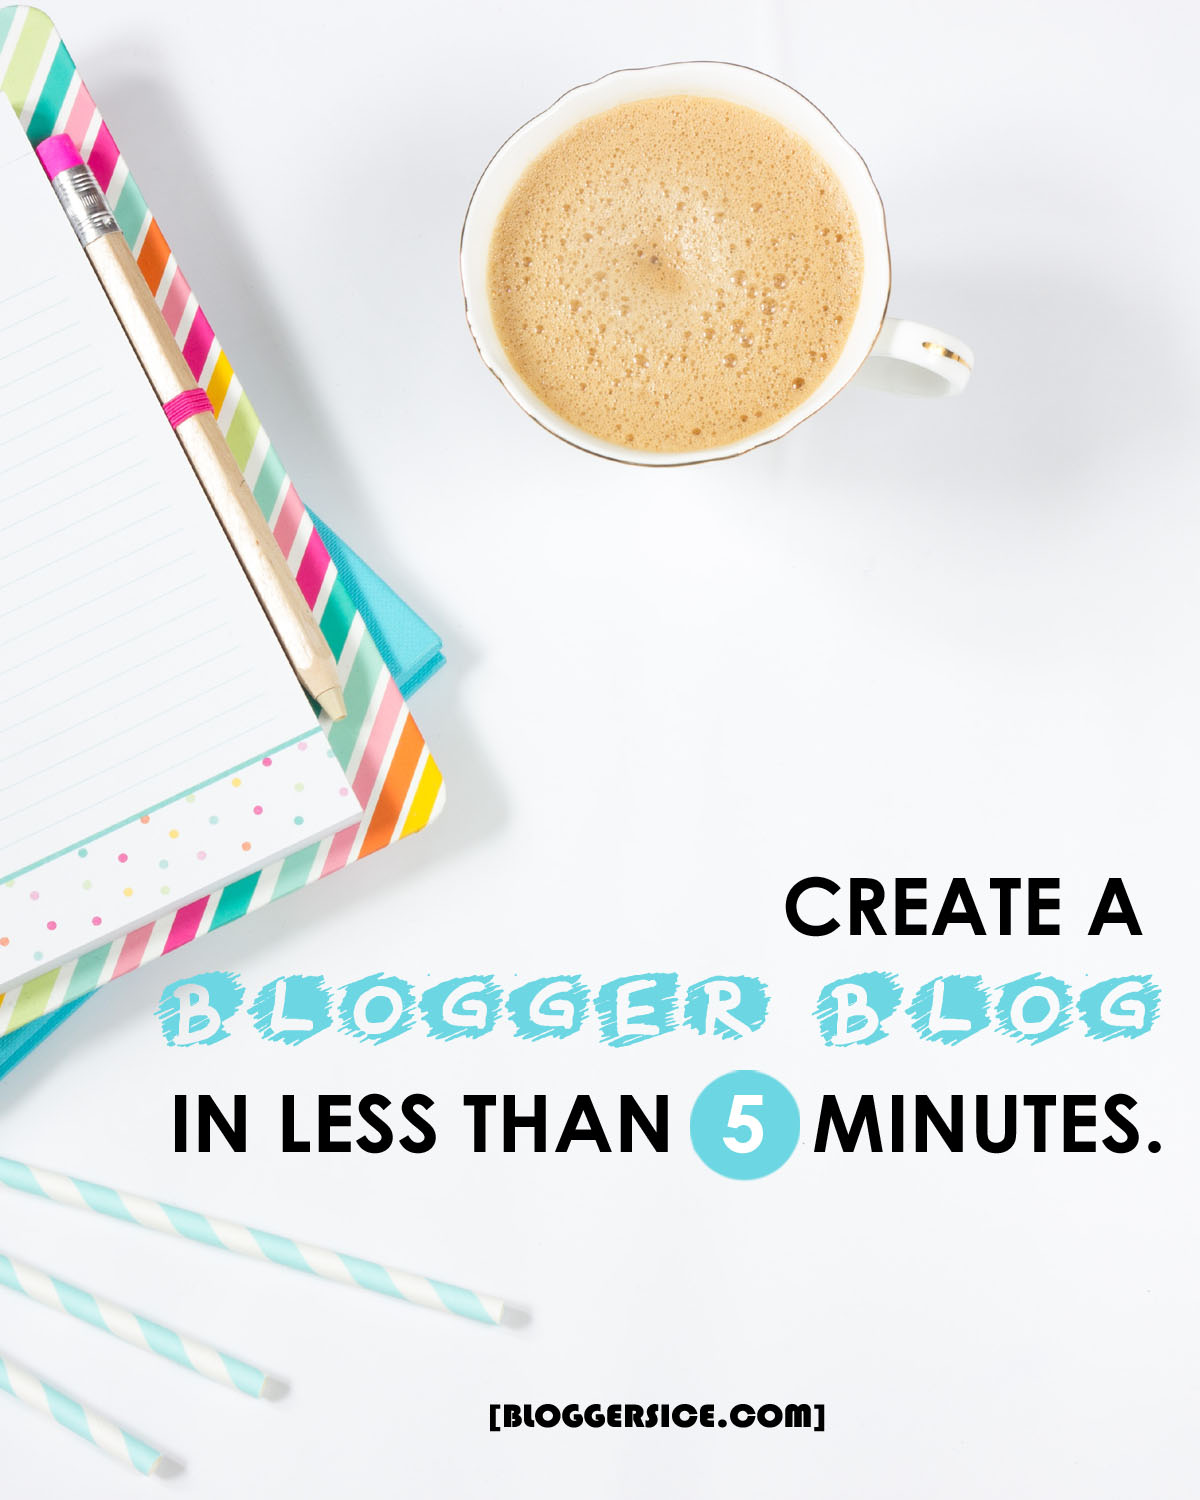 How to Create A Blogger Blog in Less Than 5 Minutes